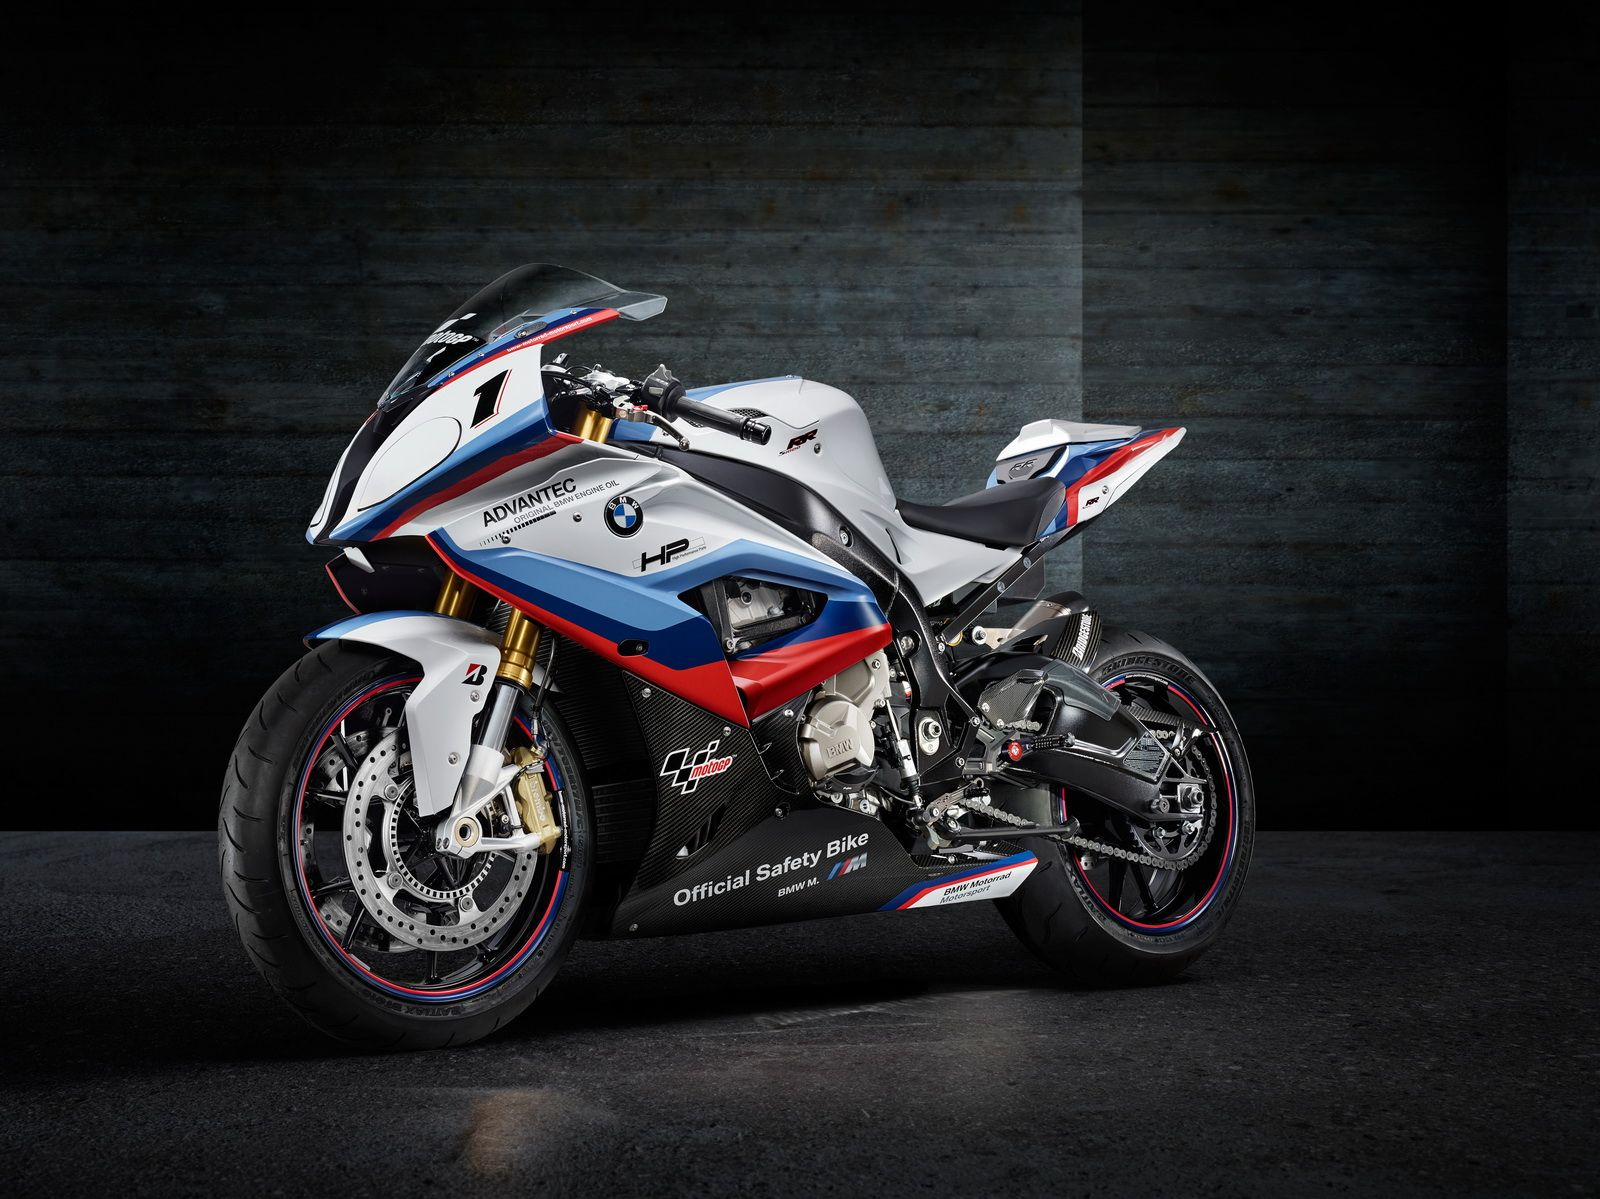 Bmw Introduces M4 Motogp Pace Car With Water Injection System